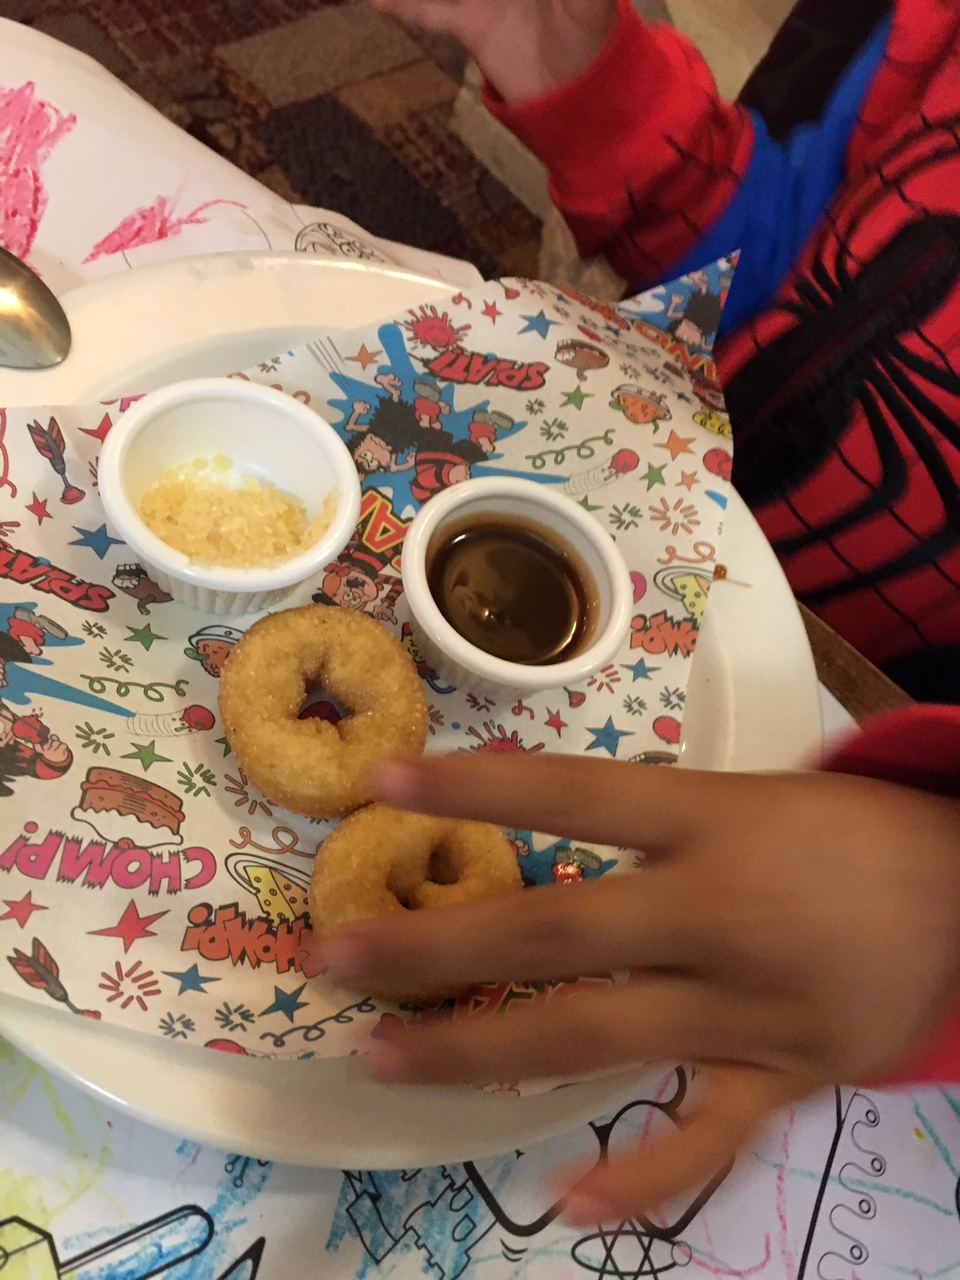 kids doughnuts at brewer's fayre